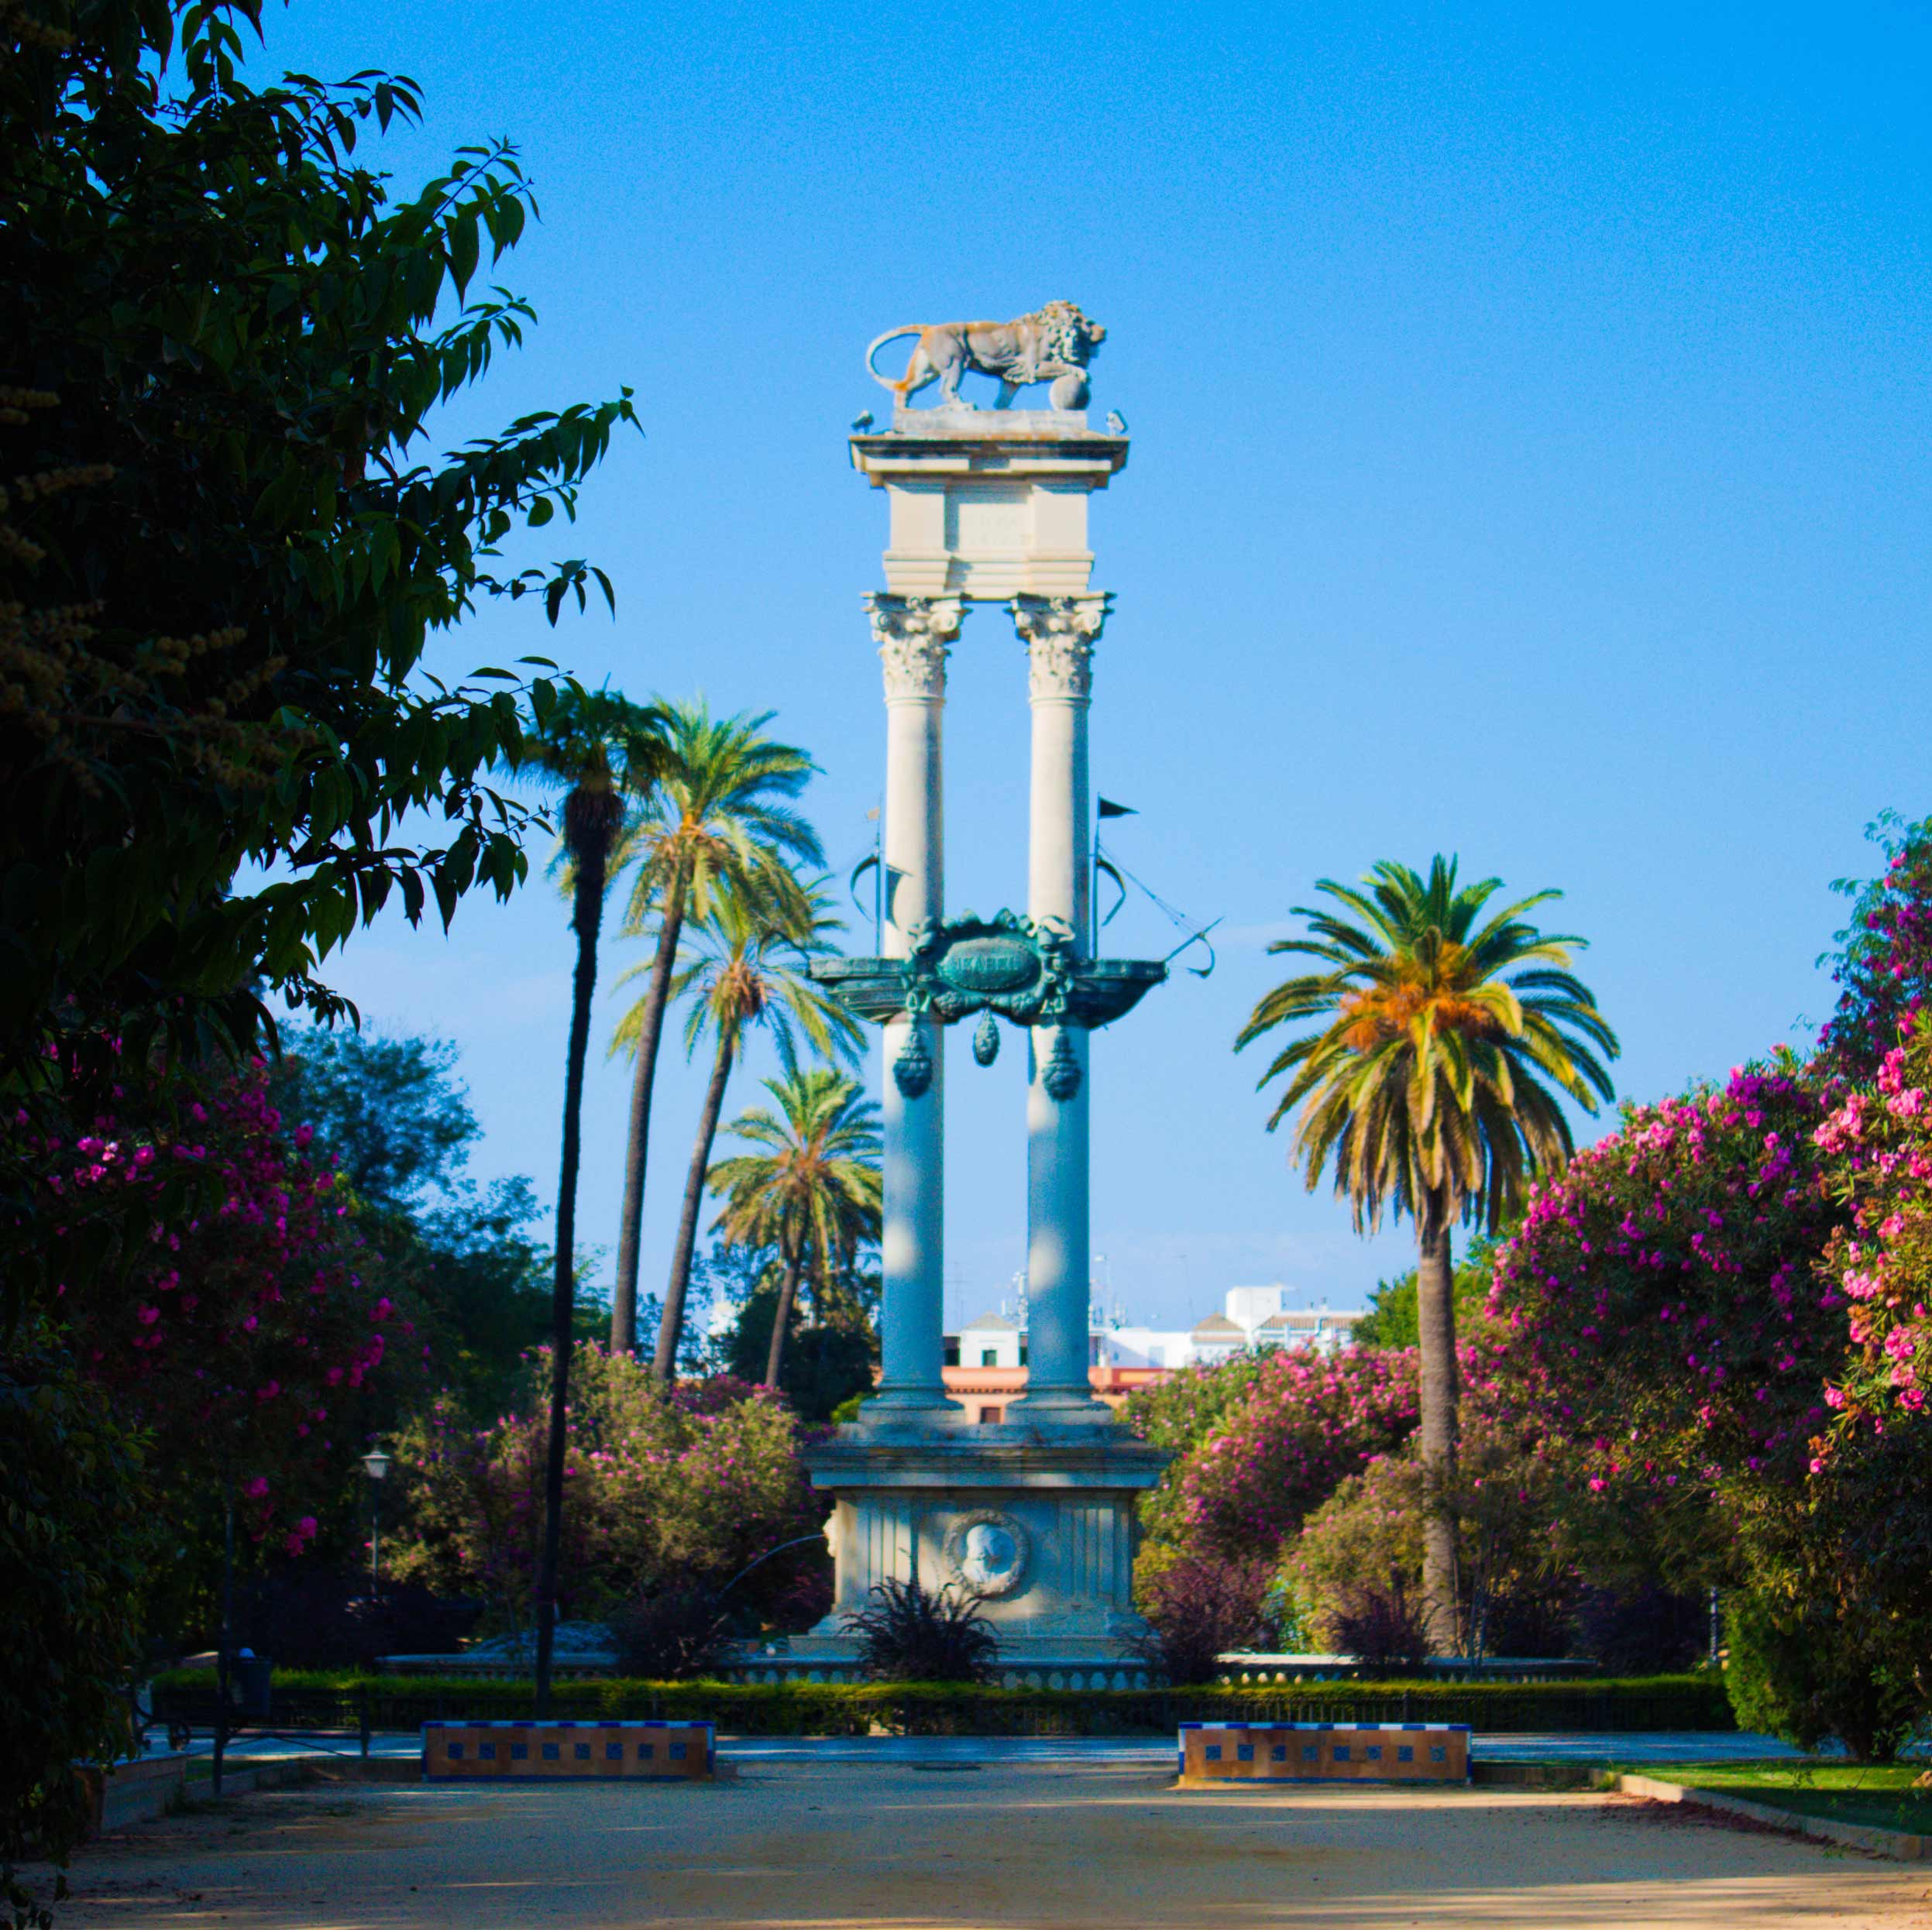 Image of the monument of Columbus in Jardines de Murillo